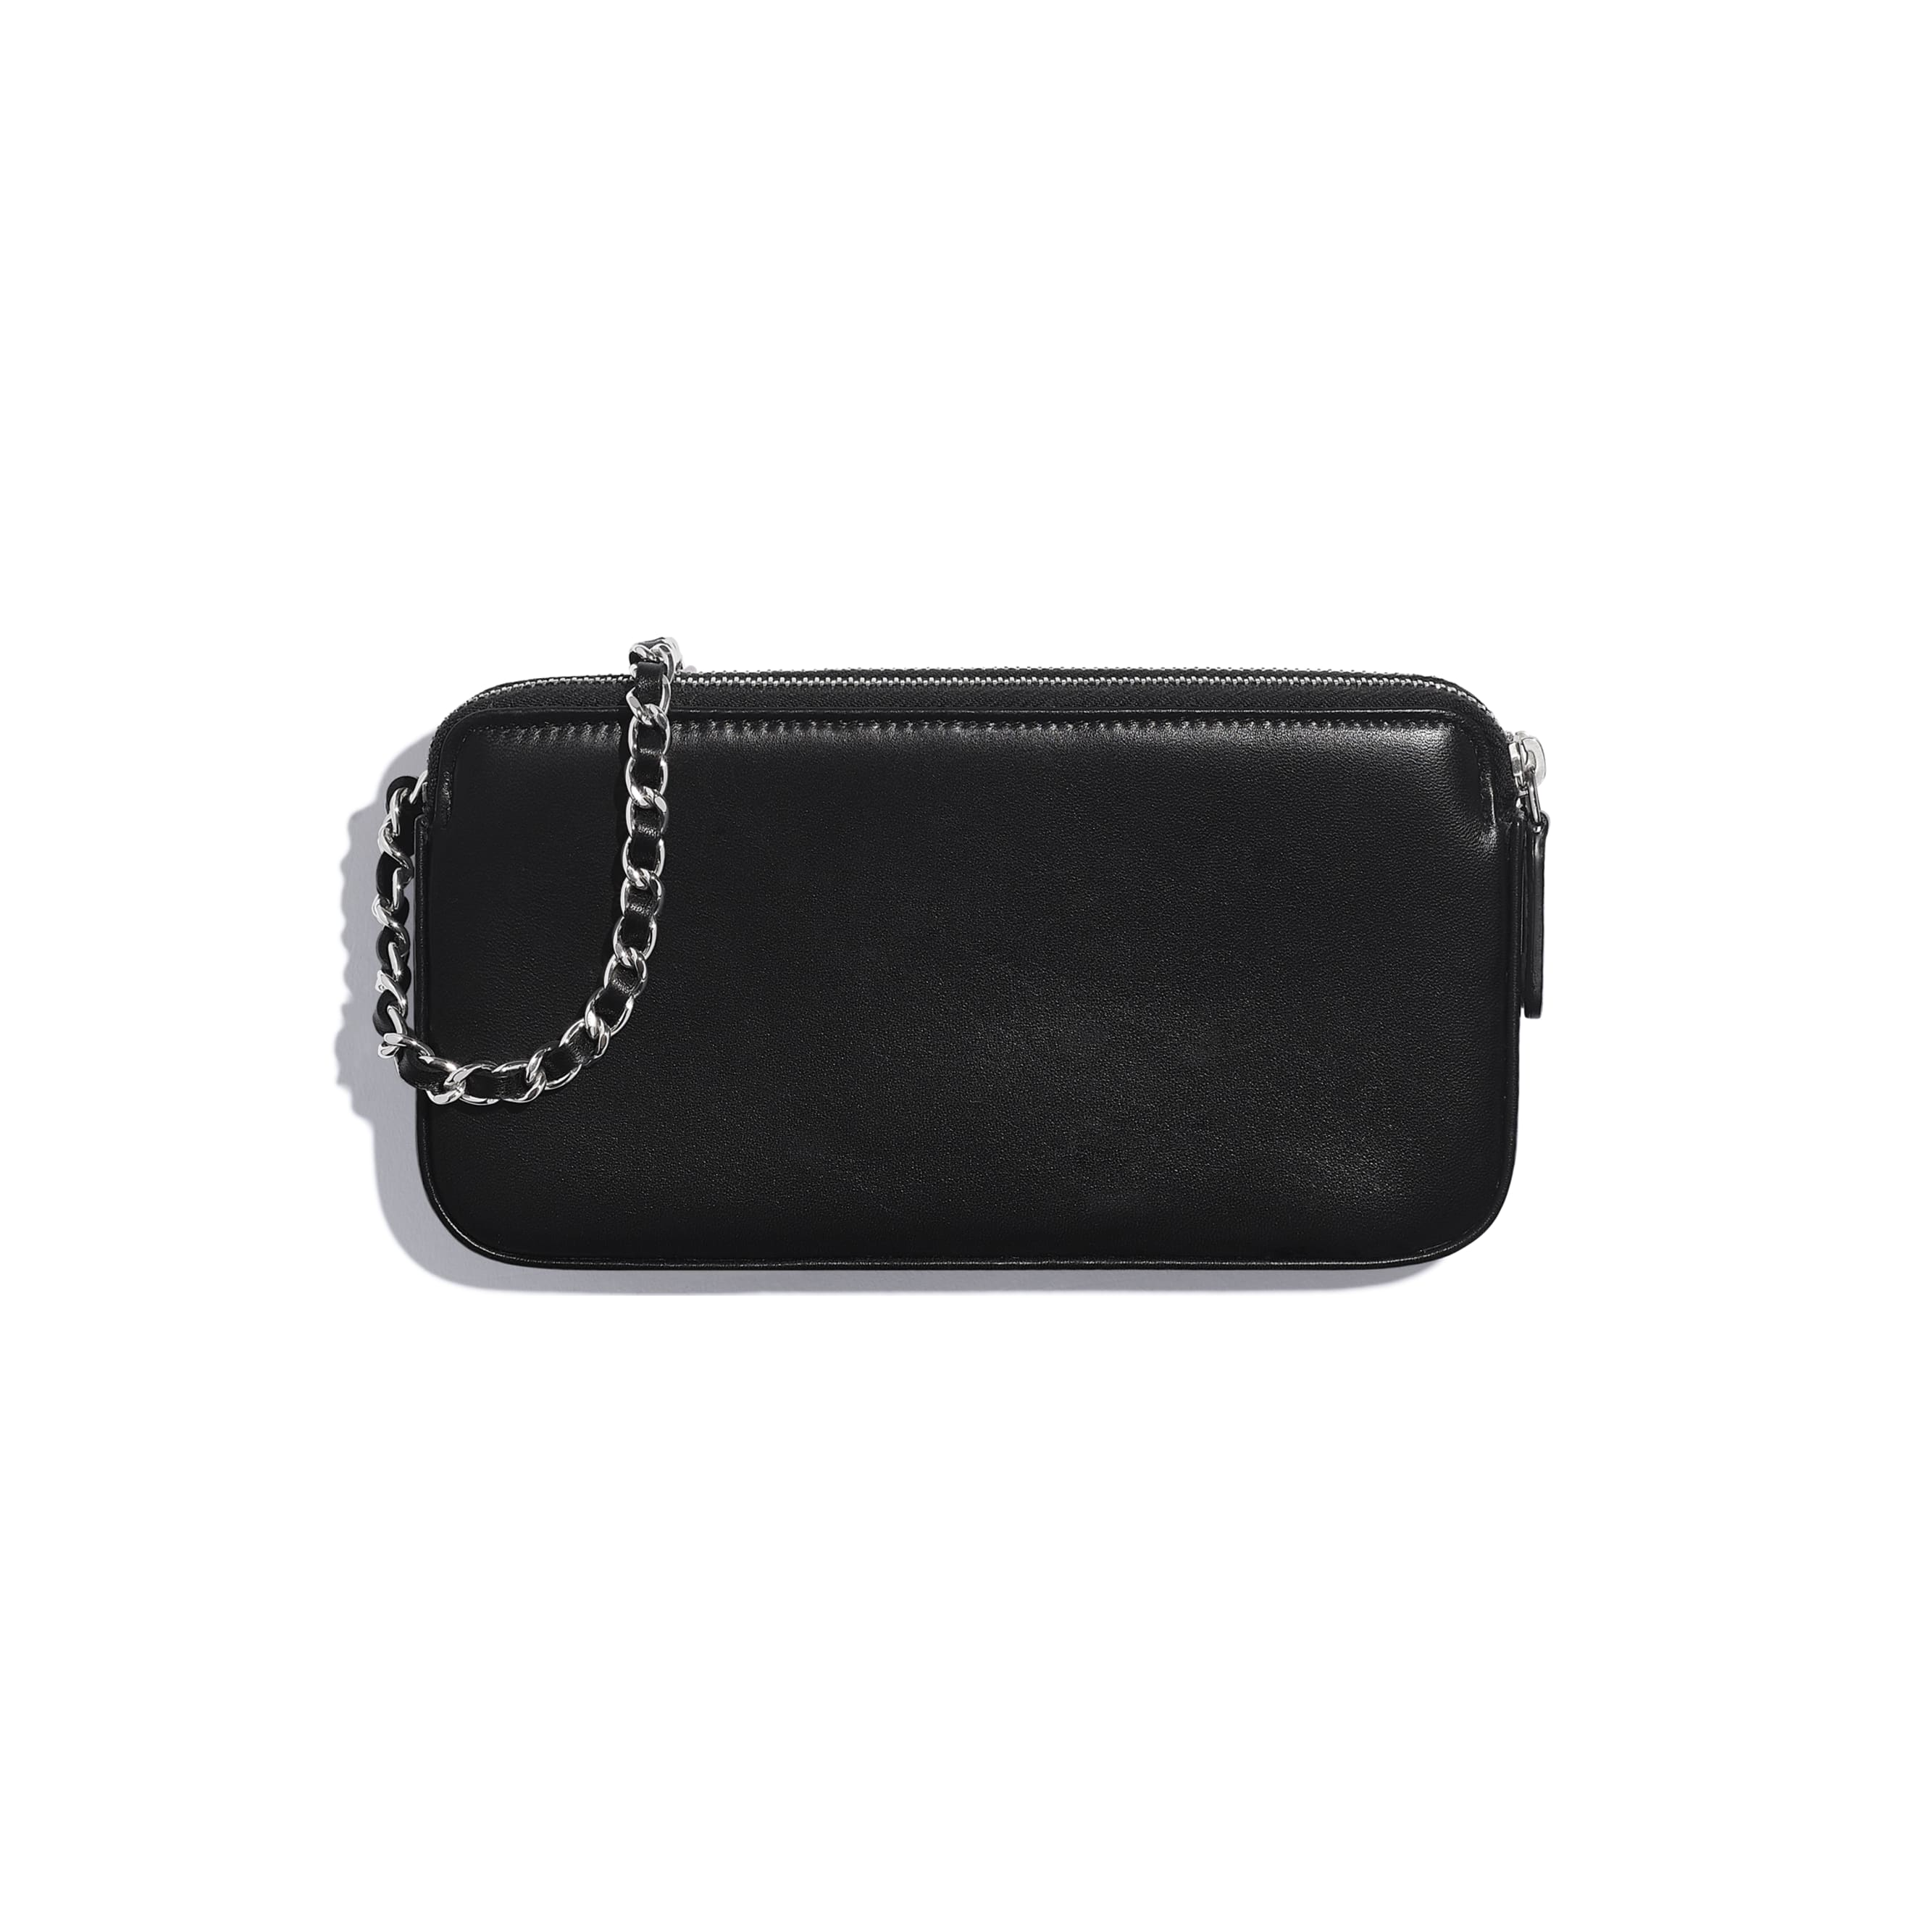 Clutch with Chain - Black, Silver & White - Lambskin, Sequins & Silver-Tone Metal - CHANEL - Alternative view - see standard sized version